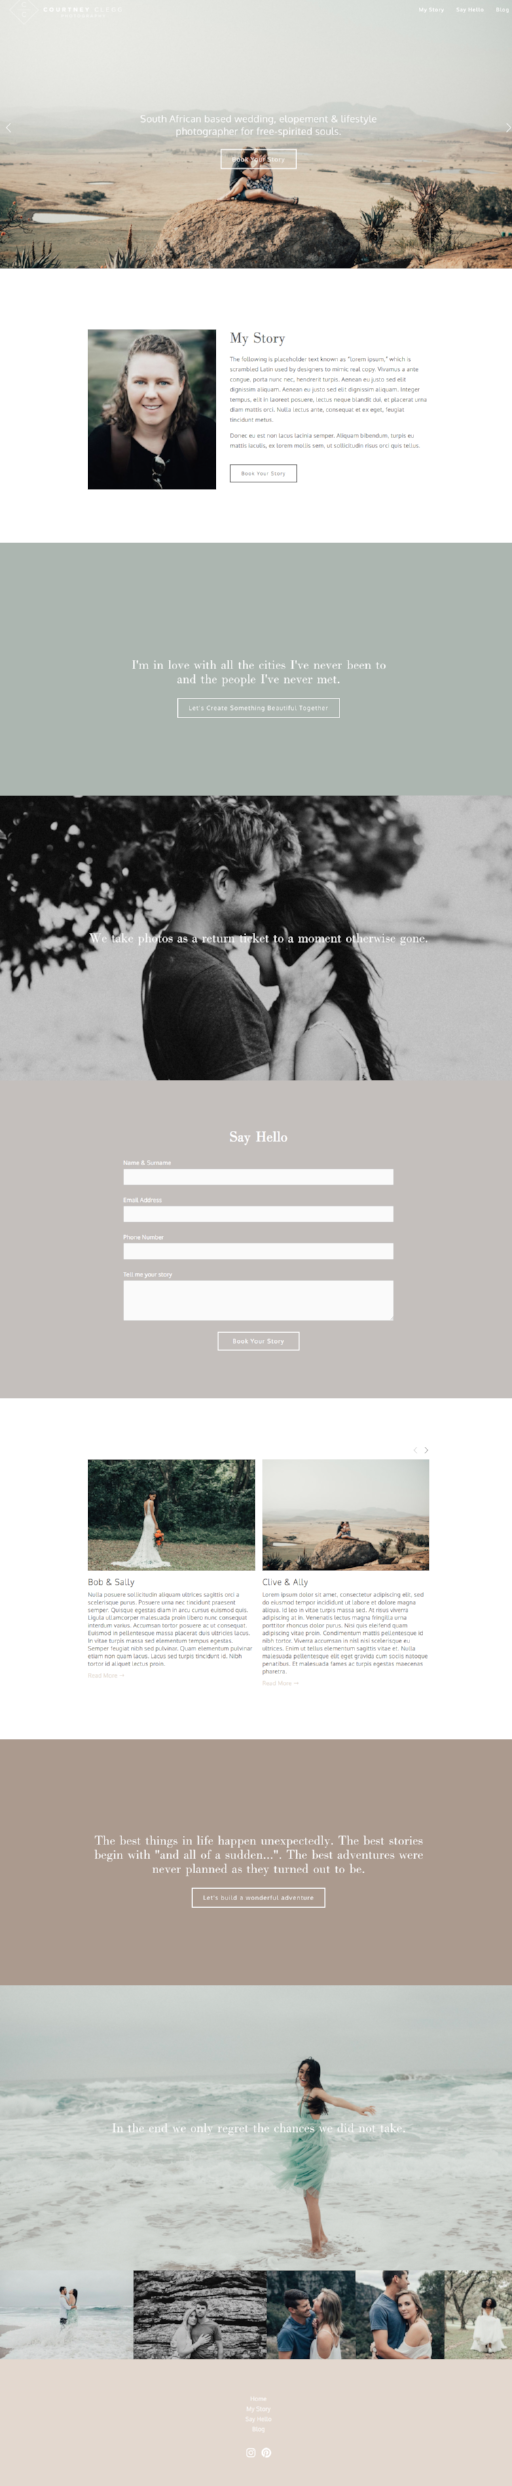 Home page for Courtney Clegg Photography